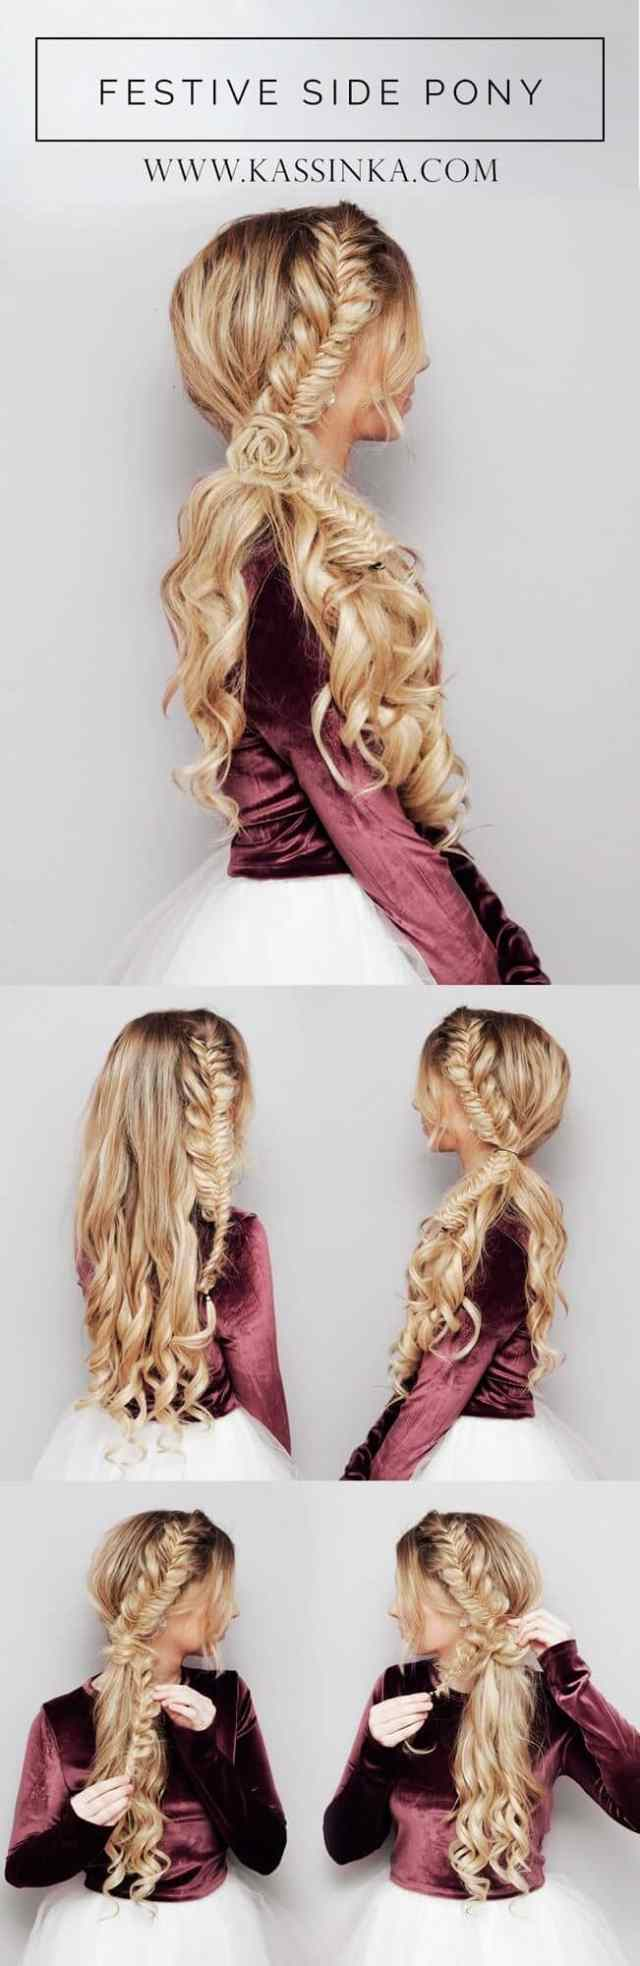 27 gorgeous wedding braid hairstyles for your big day